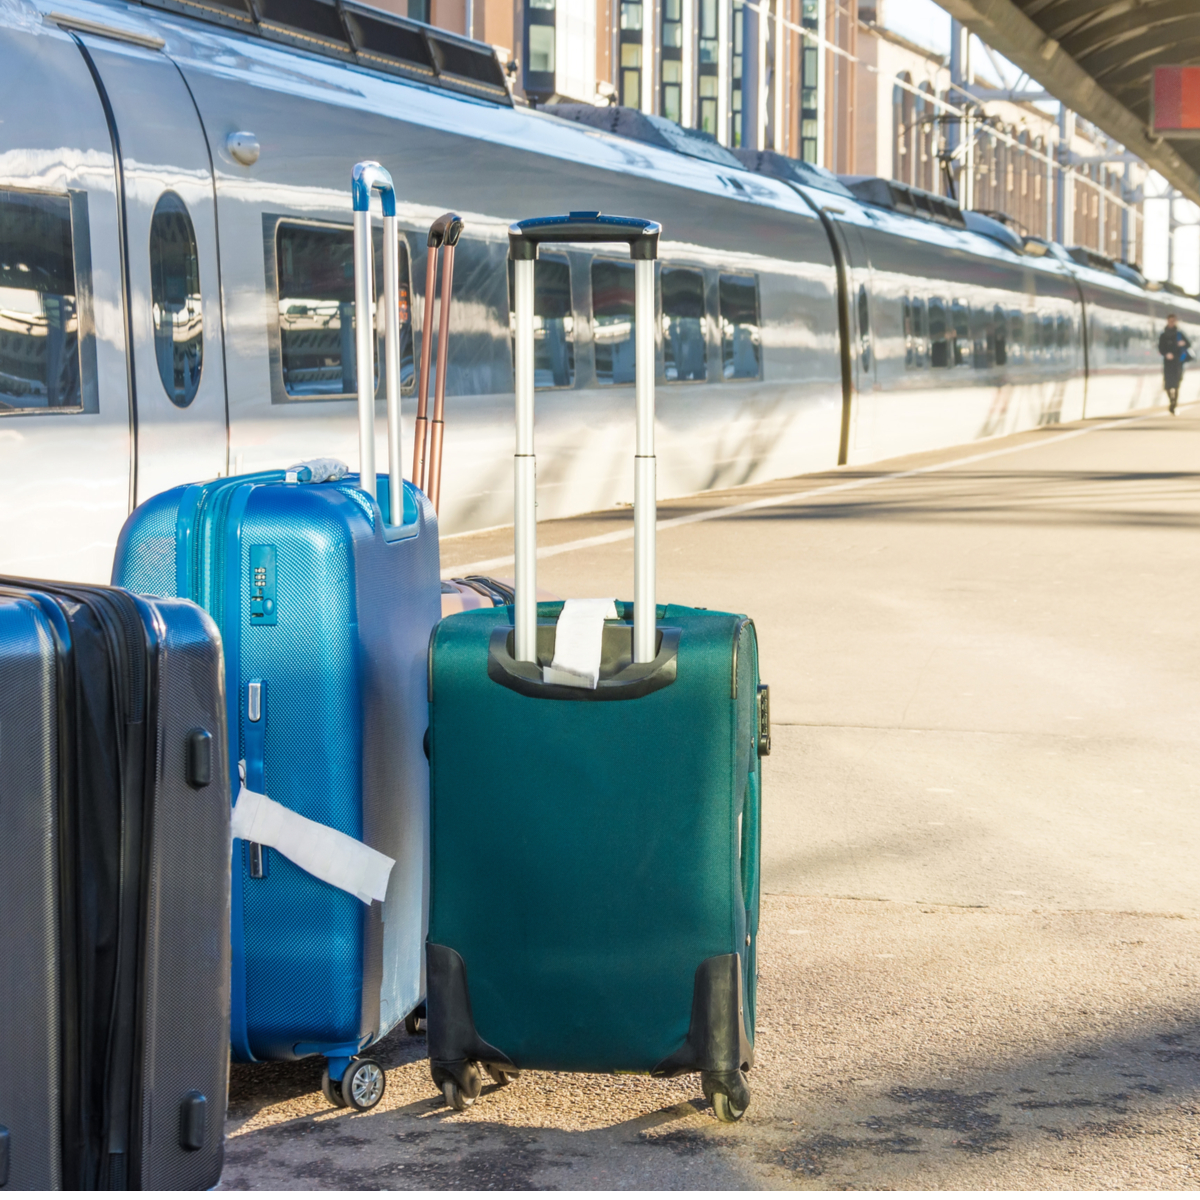 Rolling suitcases at a train station.